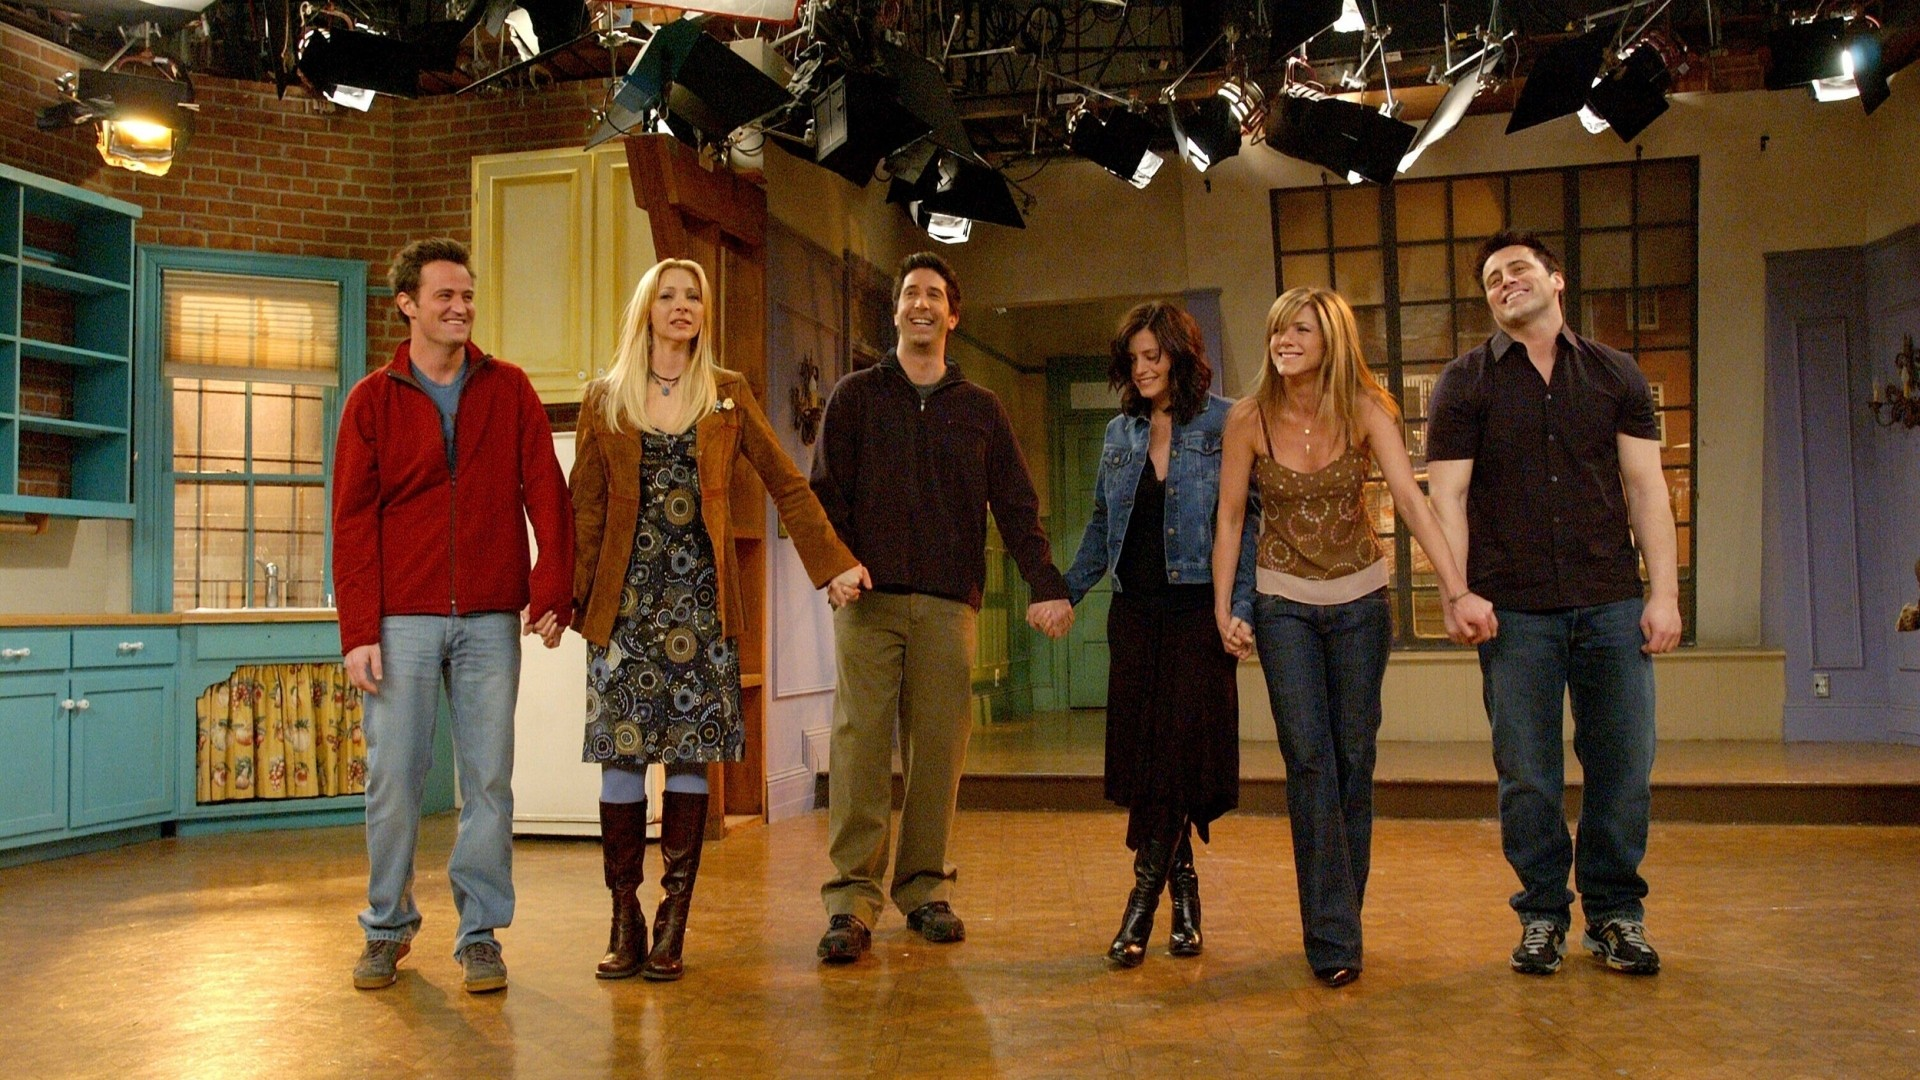 Friends Tv Show Wallpapers